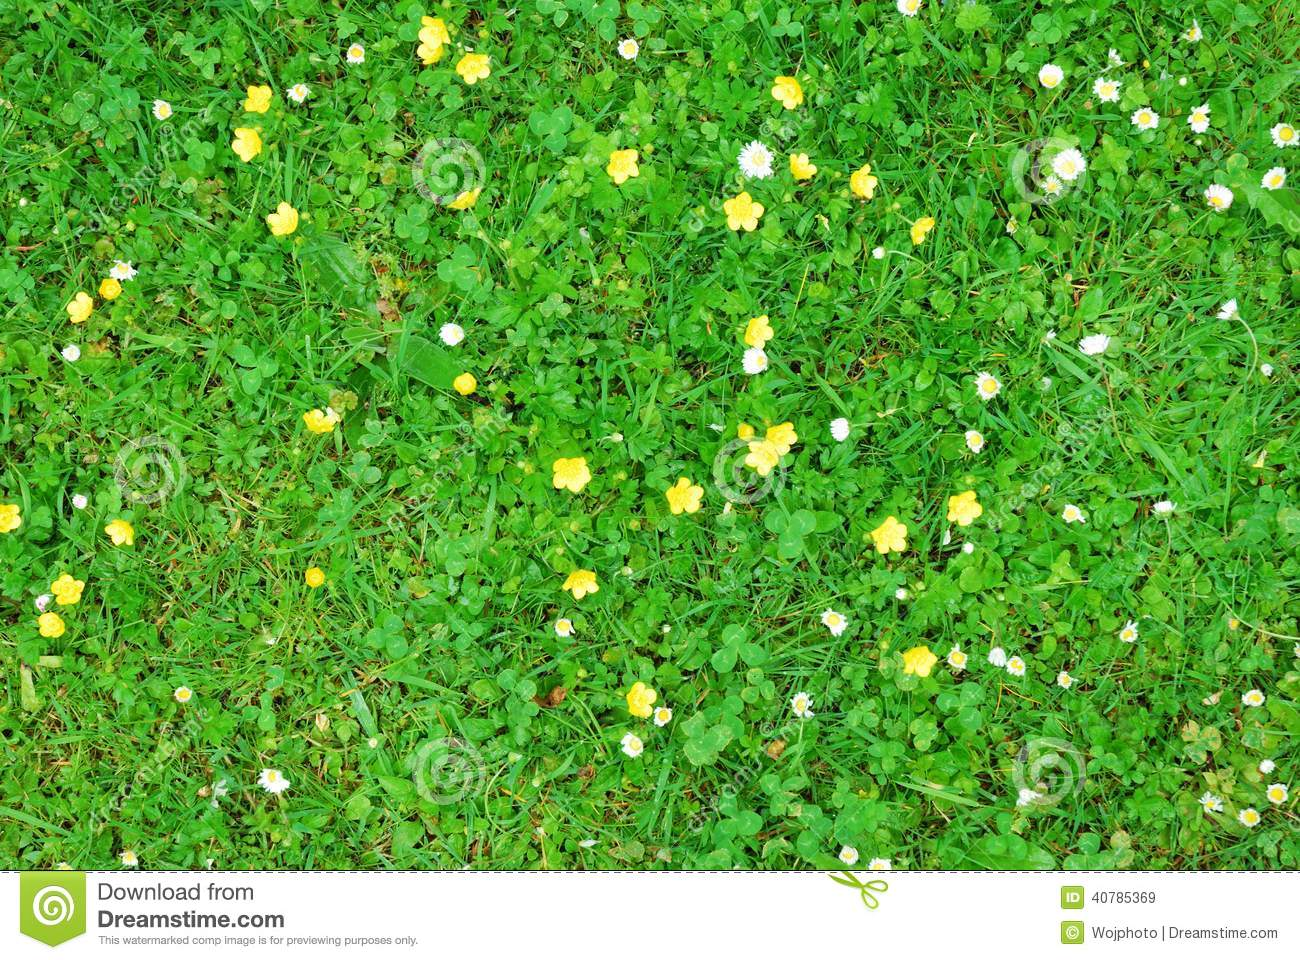 Green grass texture with white and yellow flowers